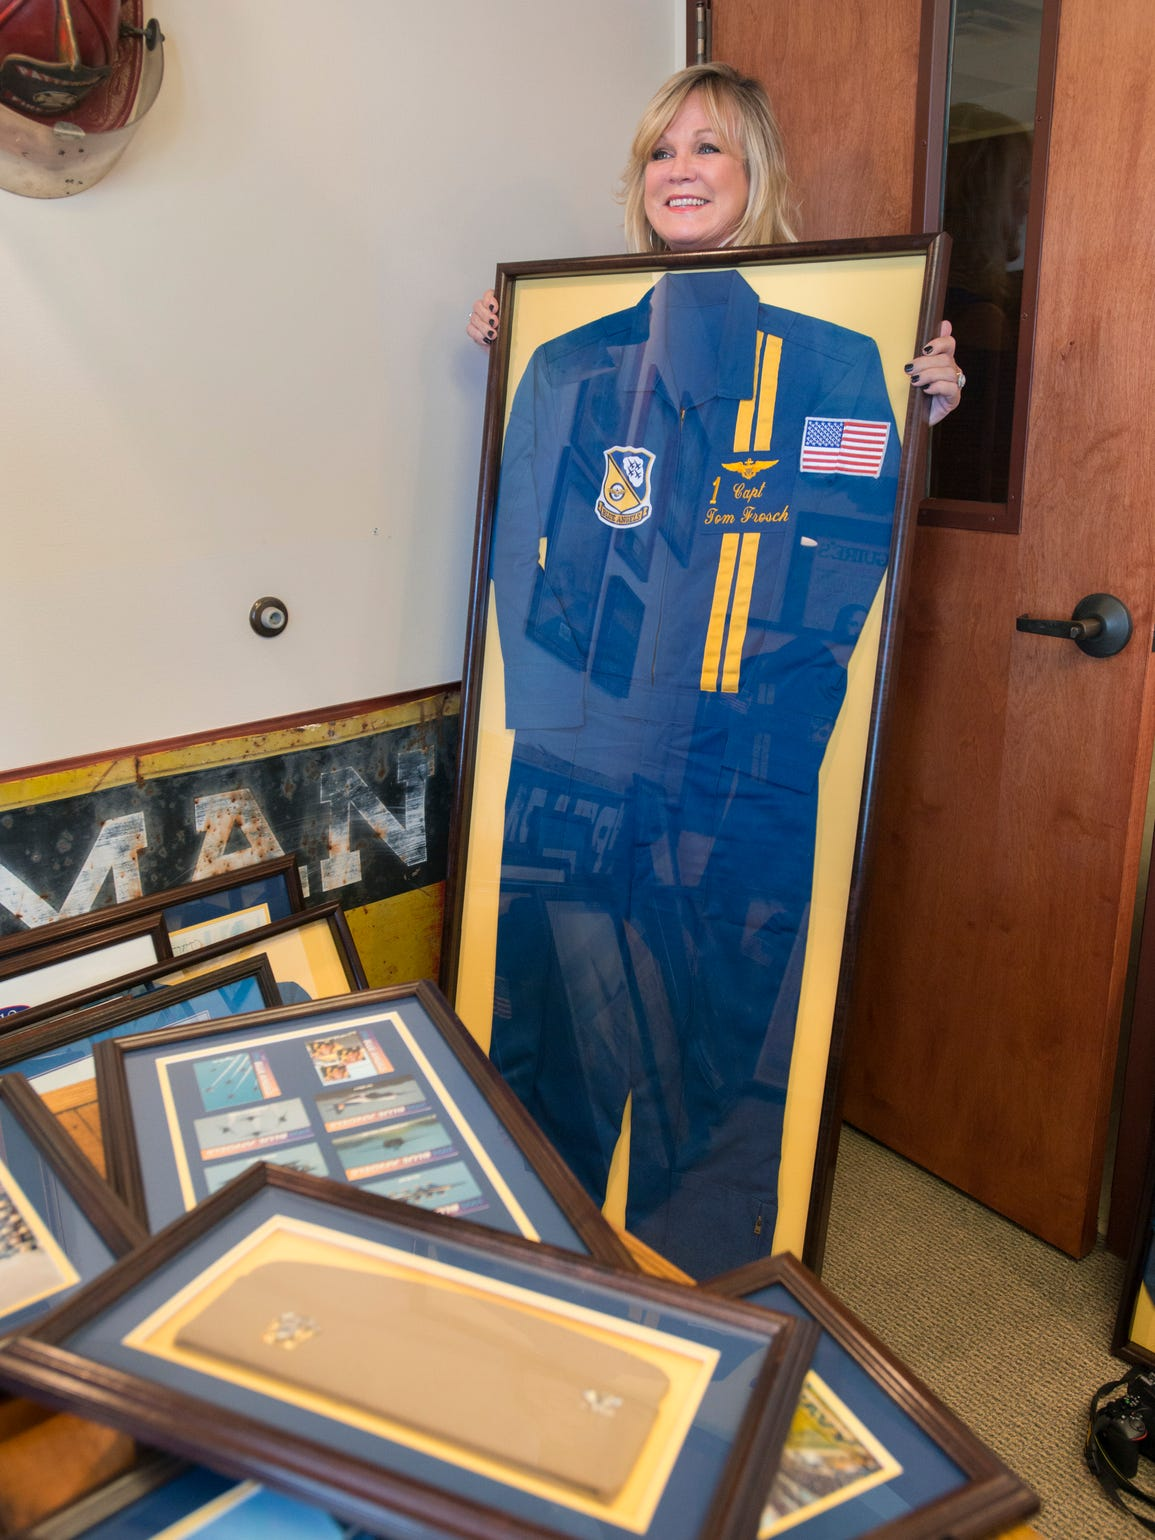 Amy Martin talks about the Blue Angels memorabilia